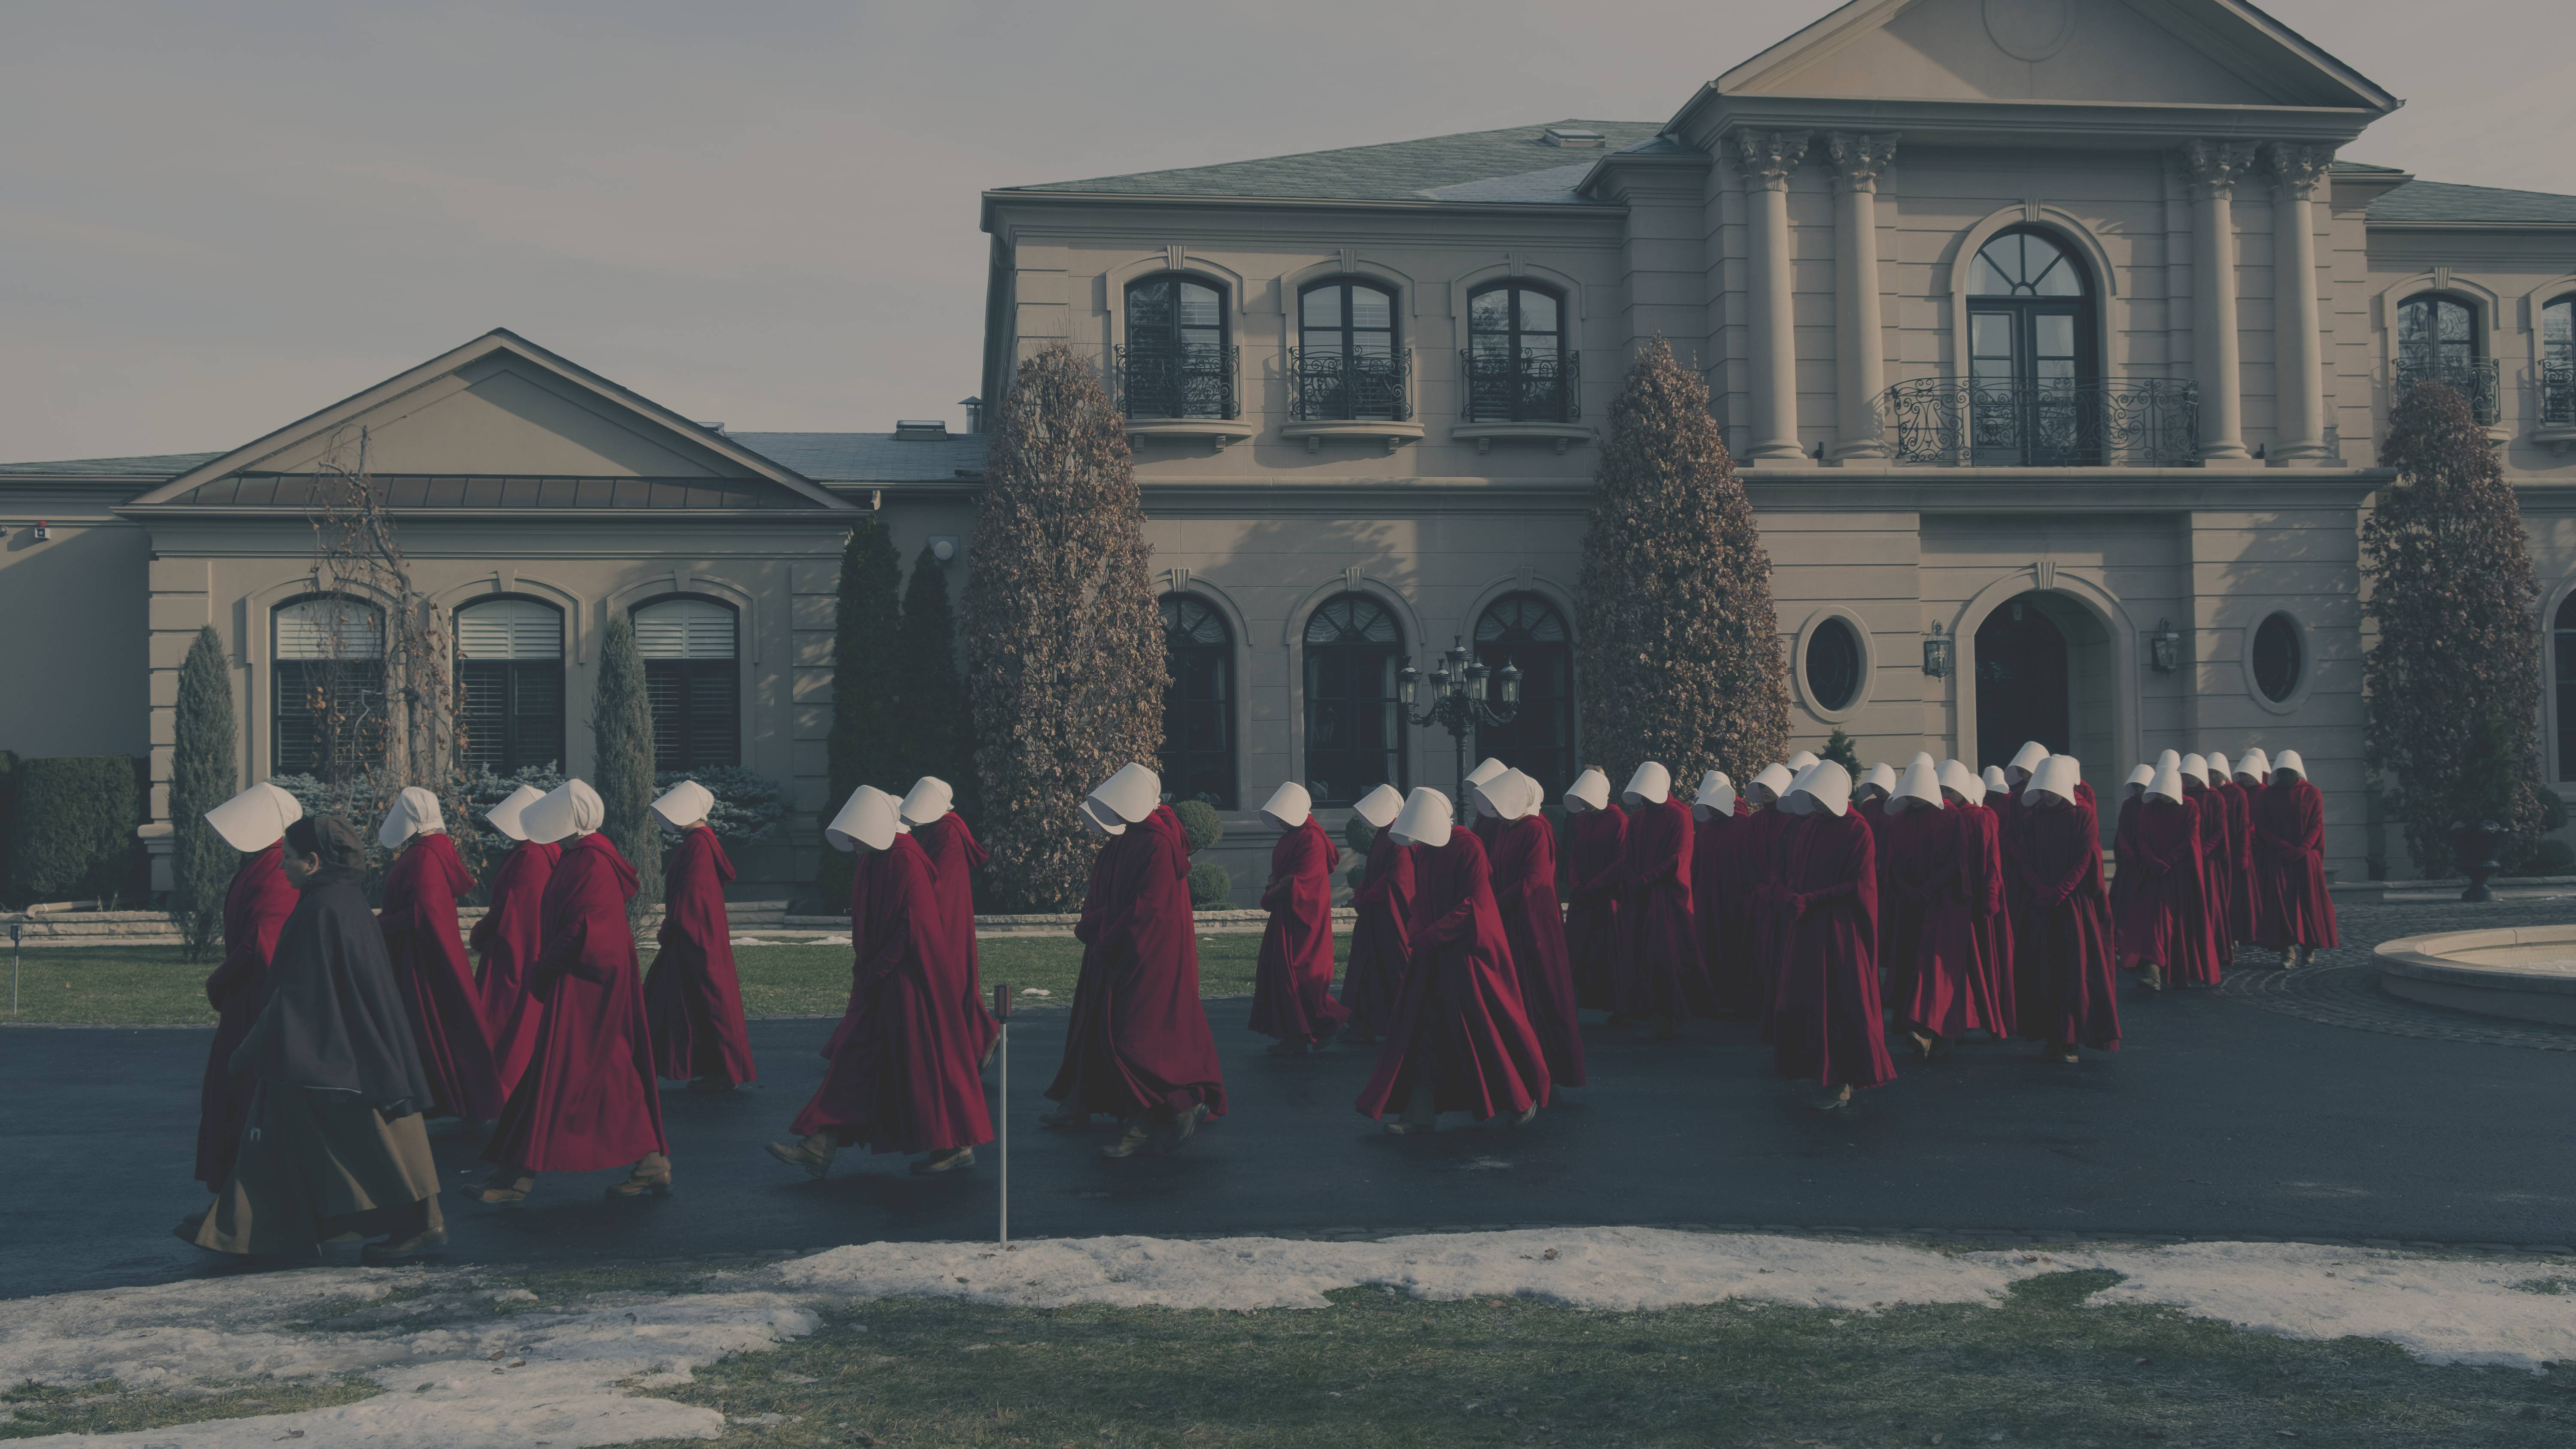 'The Handmaid's Tale' Season 2 Will Tackle Race Issues As It Tells New Stories Beyond The Book